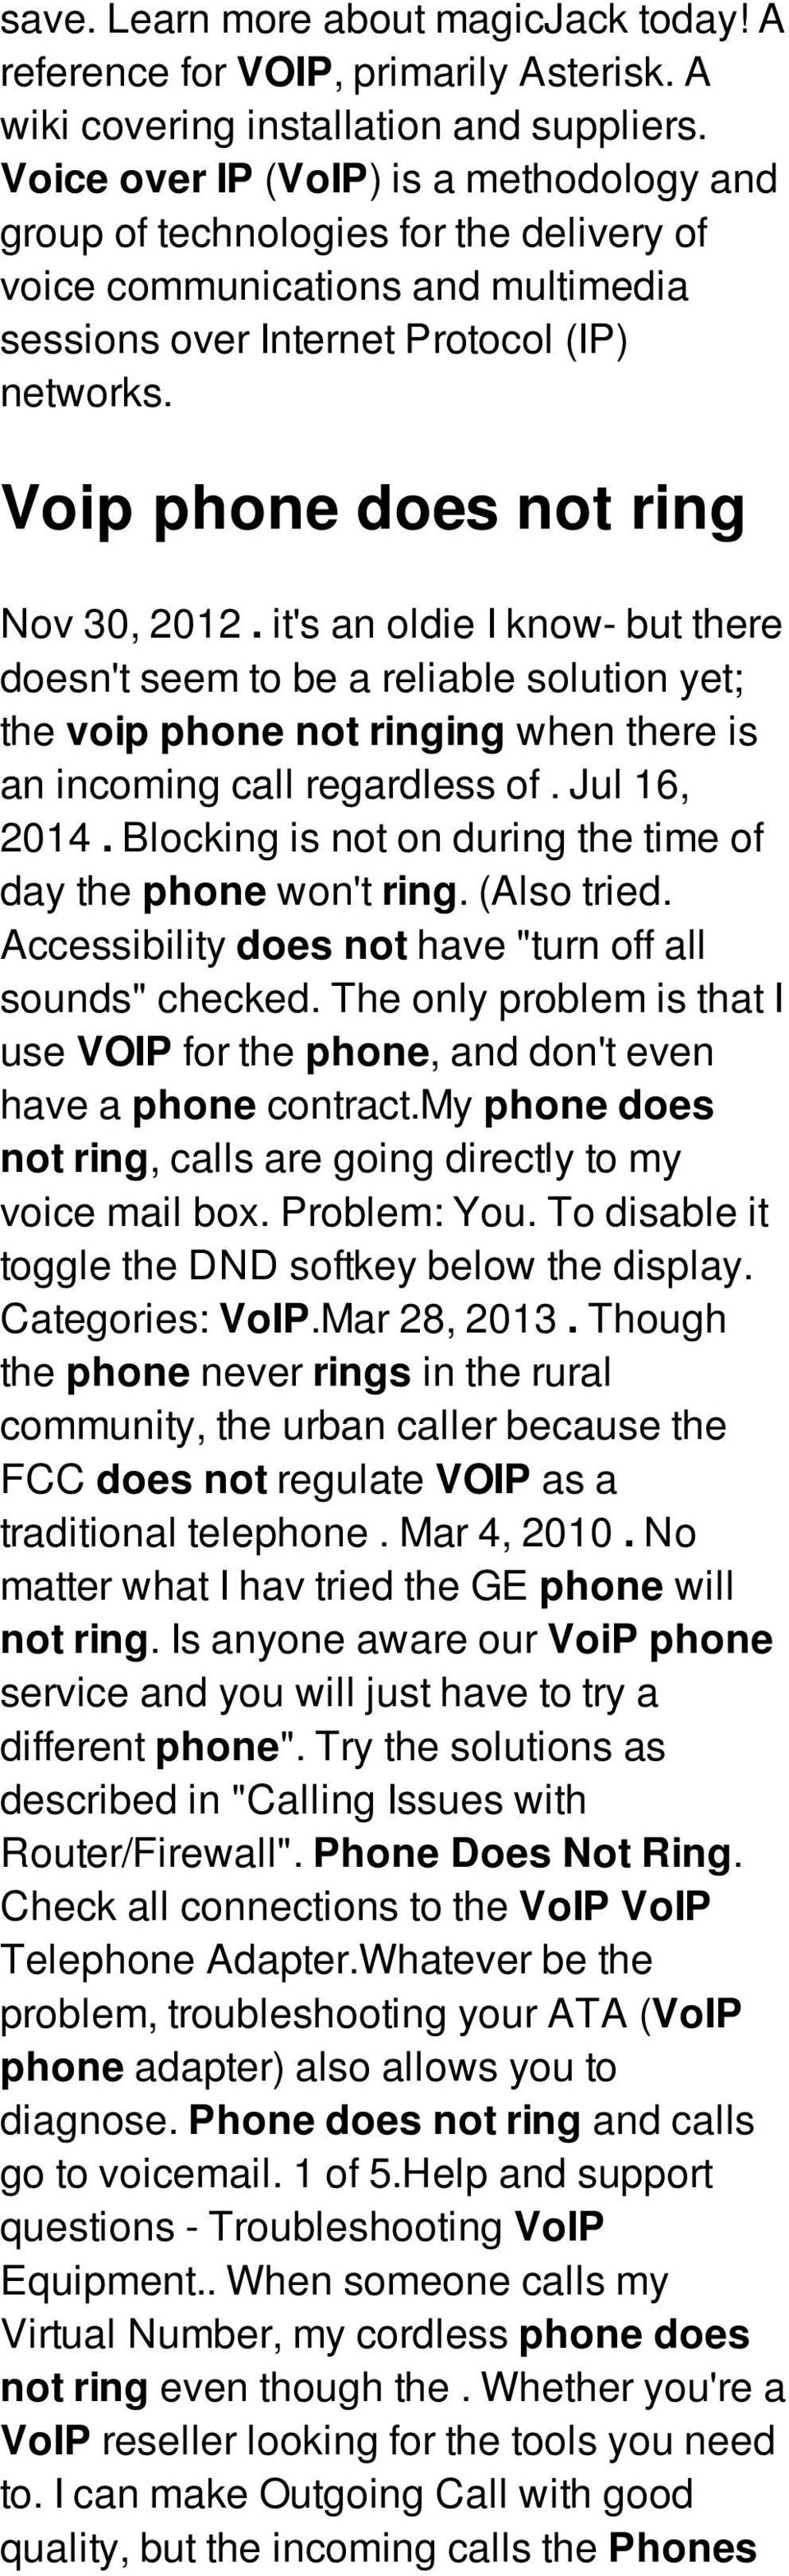 Voip phone does not ring Nov 30, 2012. it's an oldie I know- but there doesn't seem to be a reliable solution yet; the voip phone not ringing when there is an incoming call regardless of.